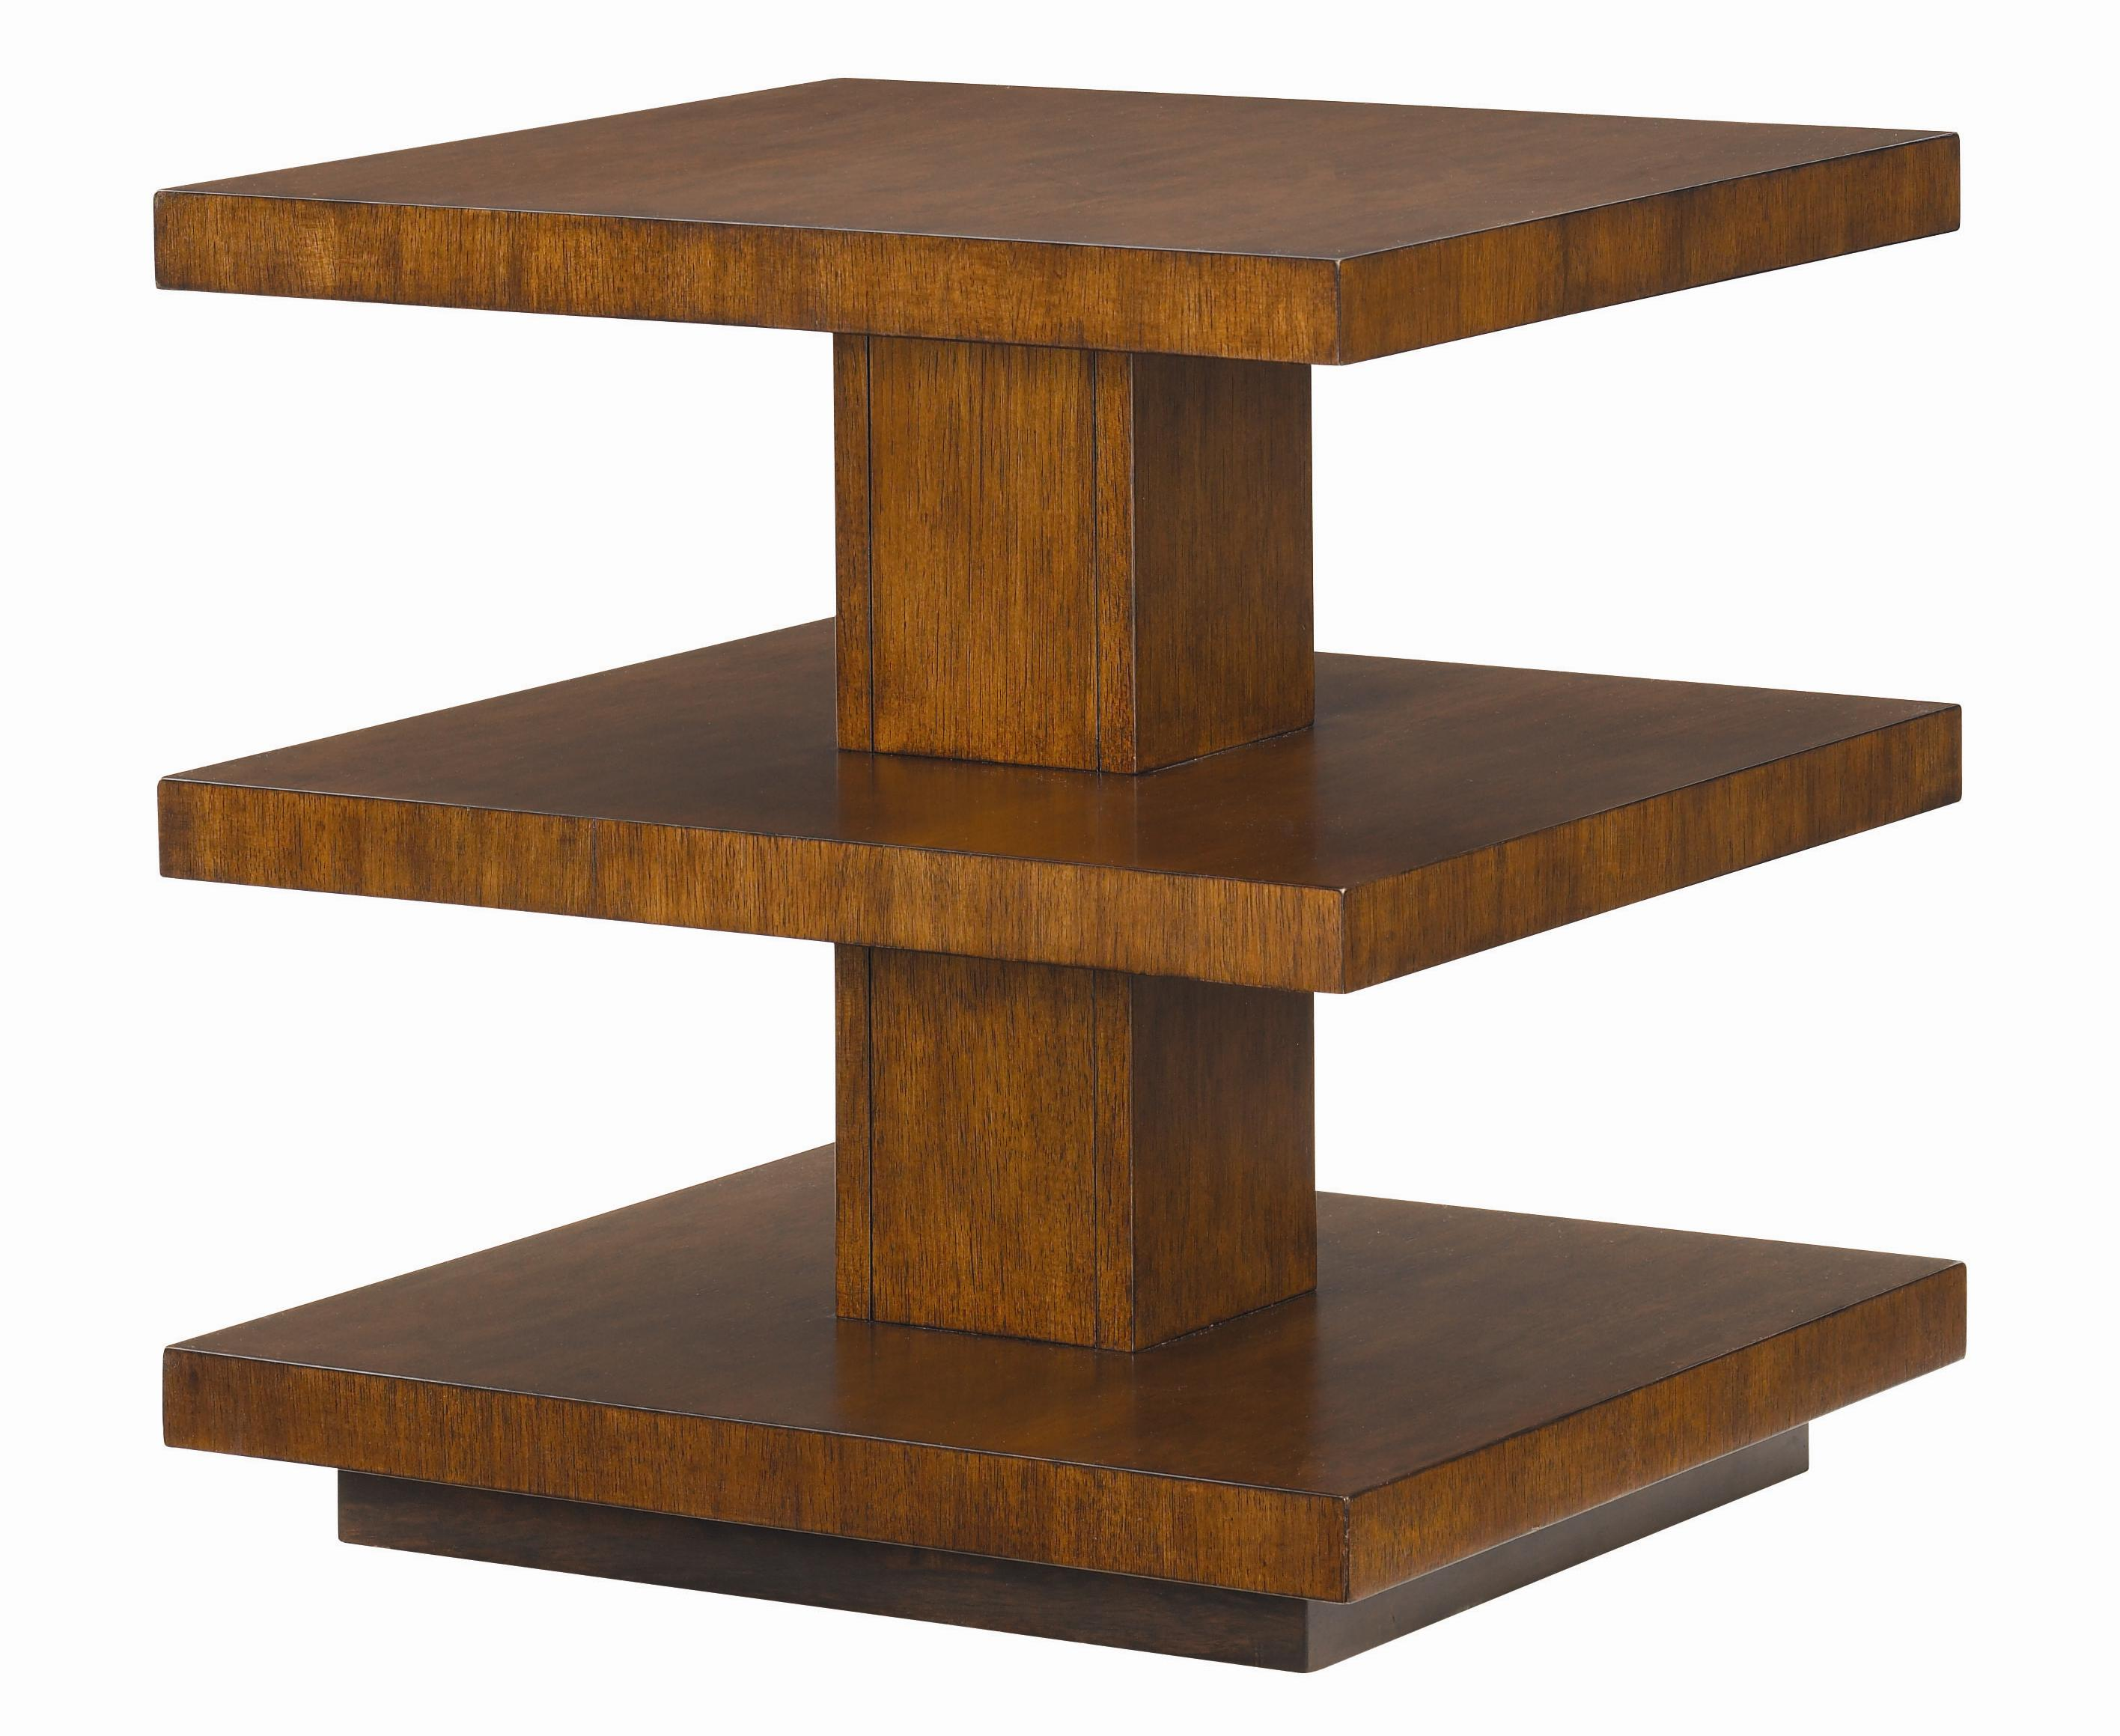 Ocean Club Lagoon Lamp Table by Tommy Bahama Home at Baer's Furniture